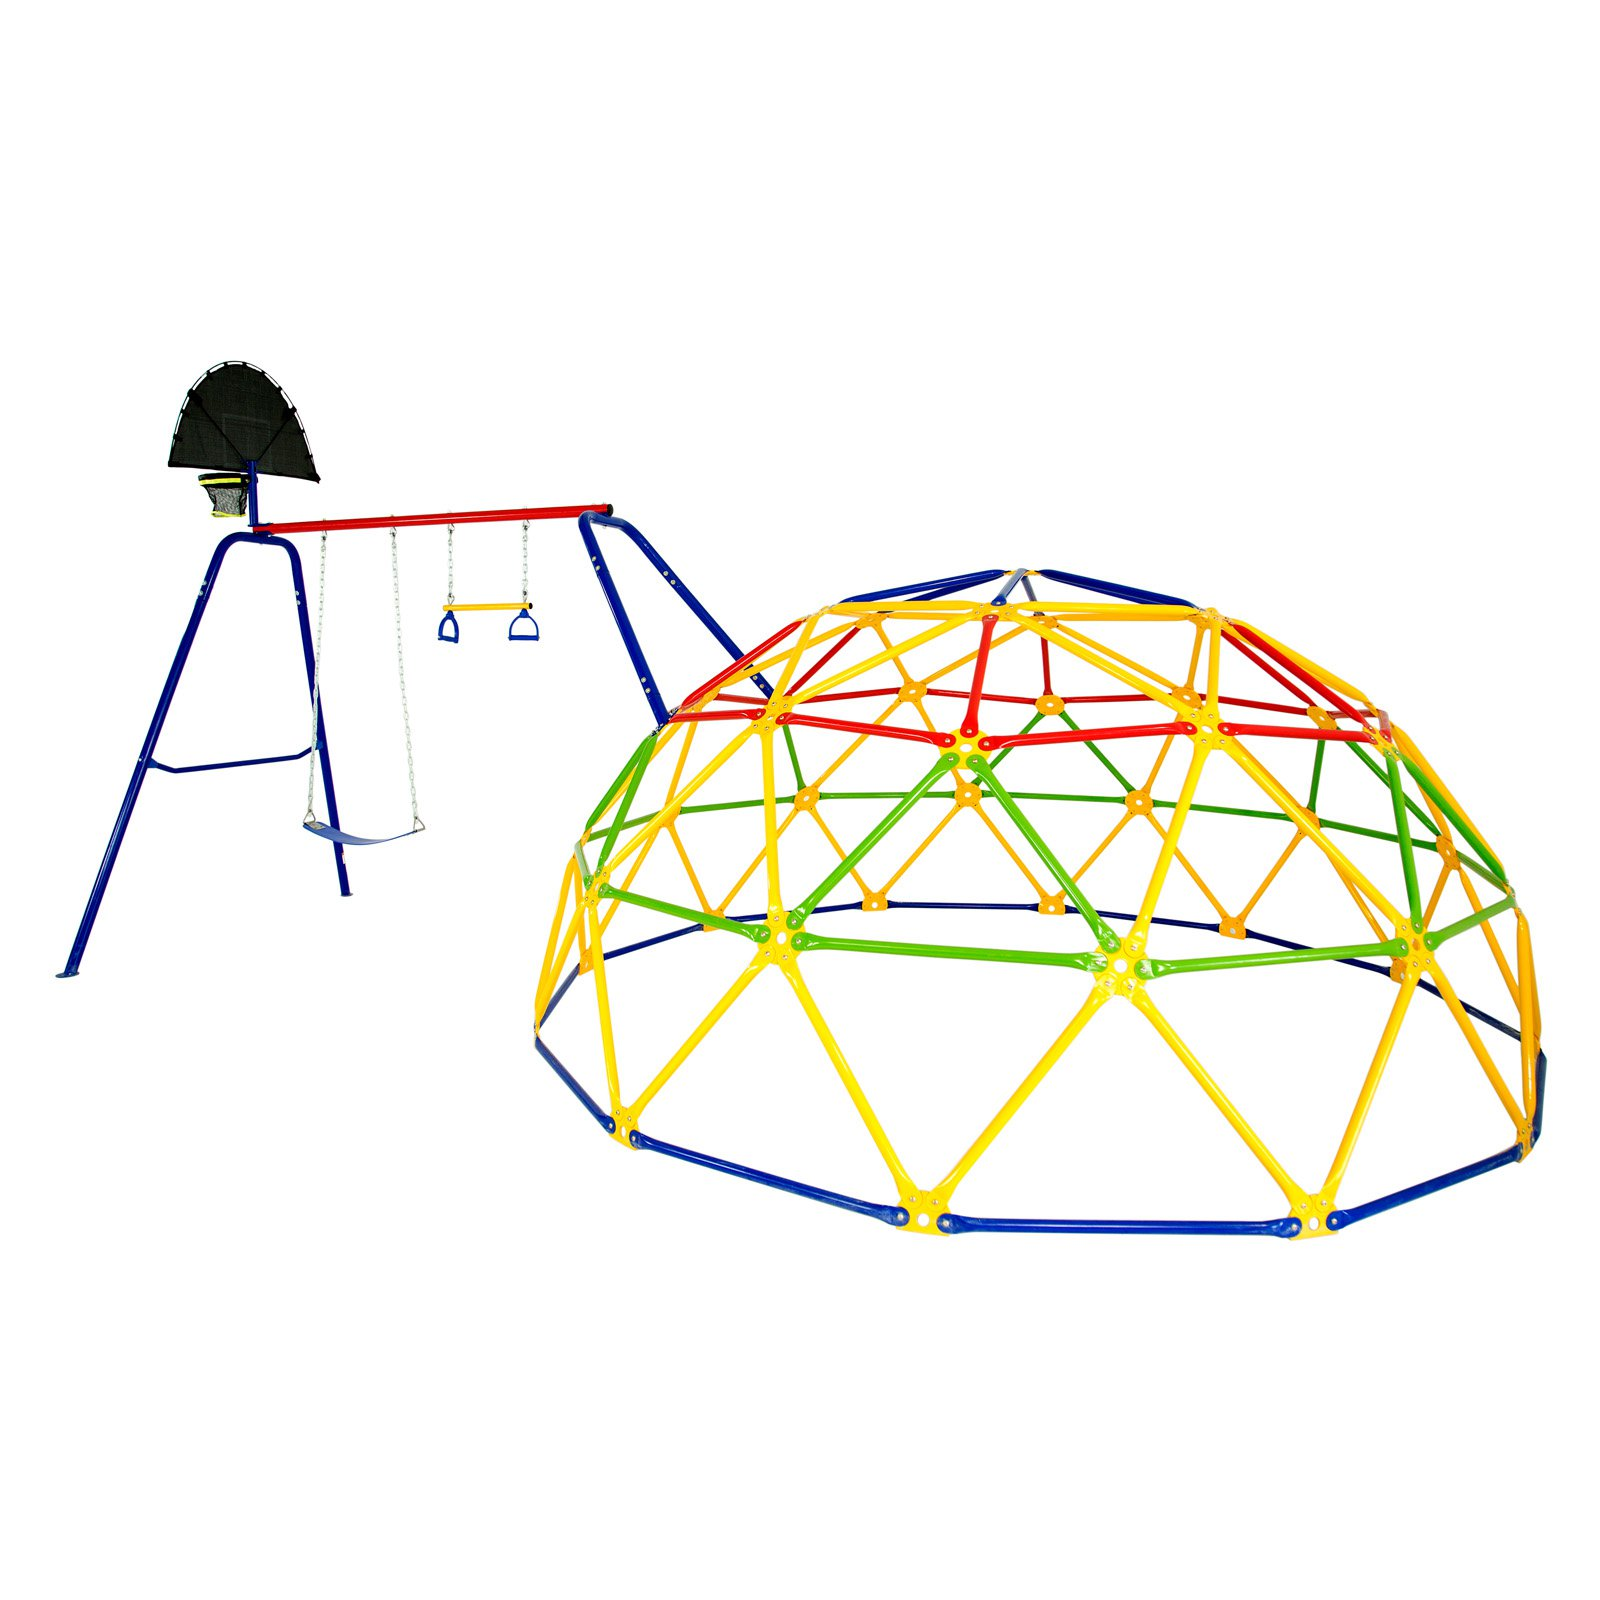 Skywalker Sports Geo Dome Climber with Swing Set Accessory